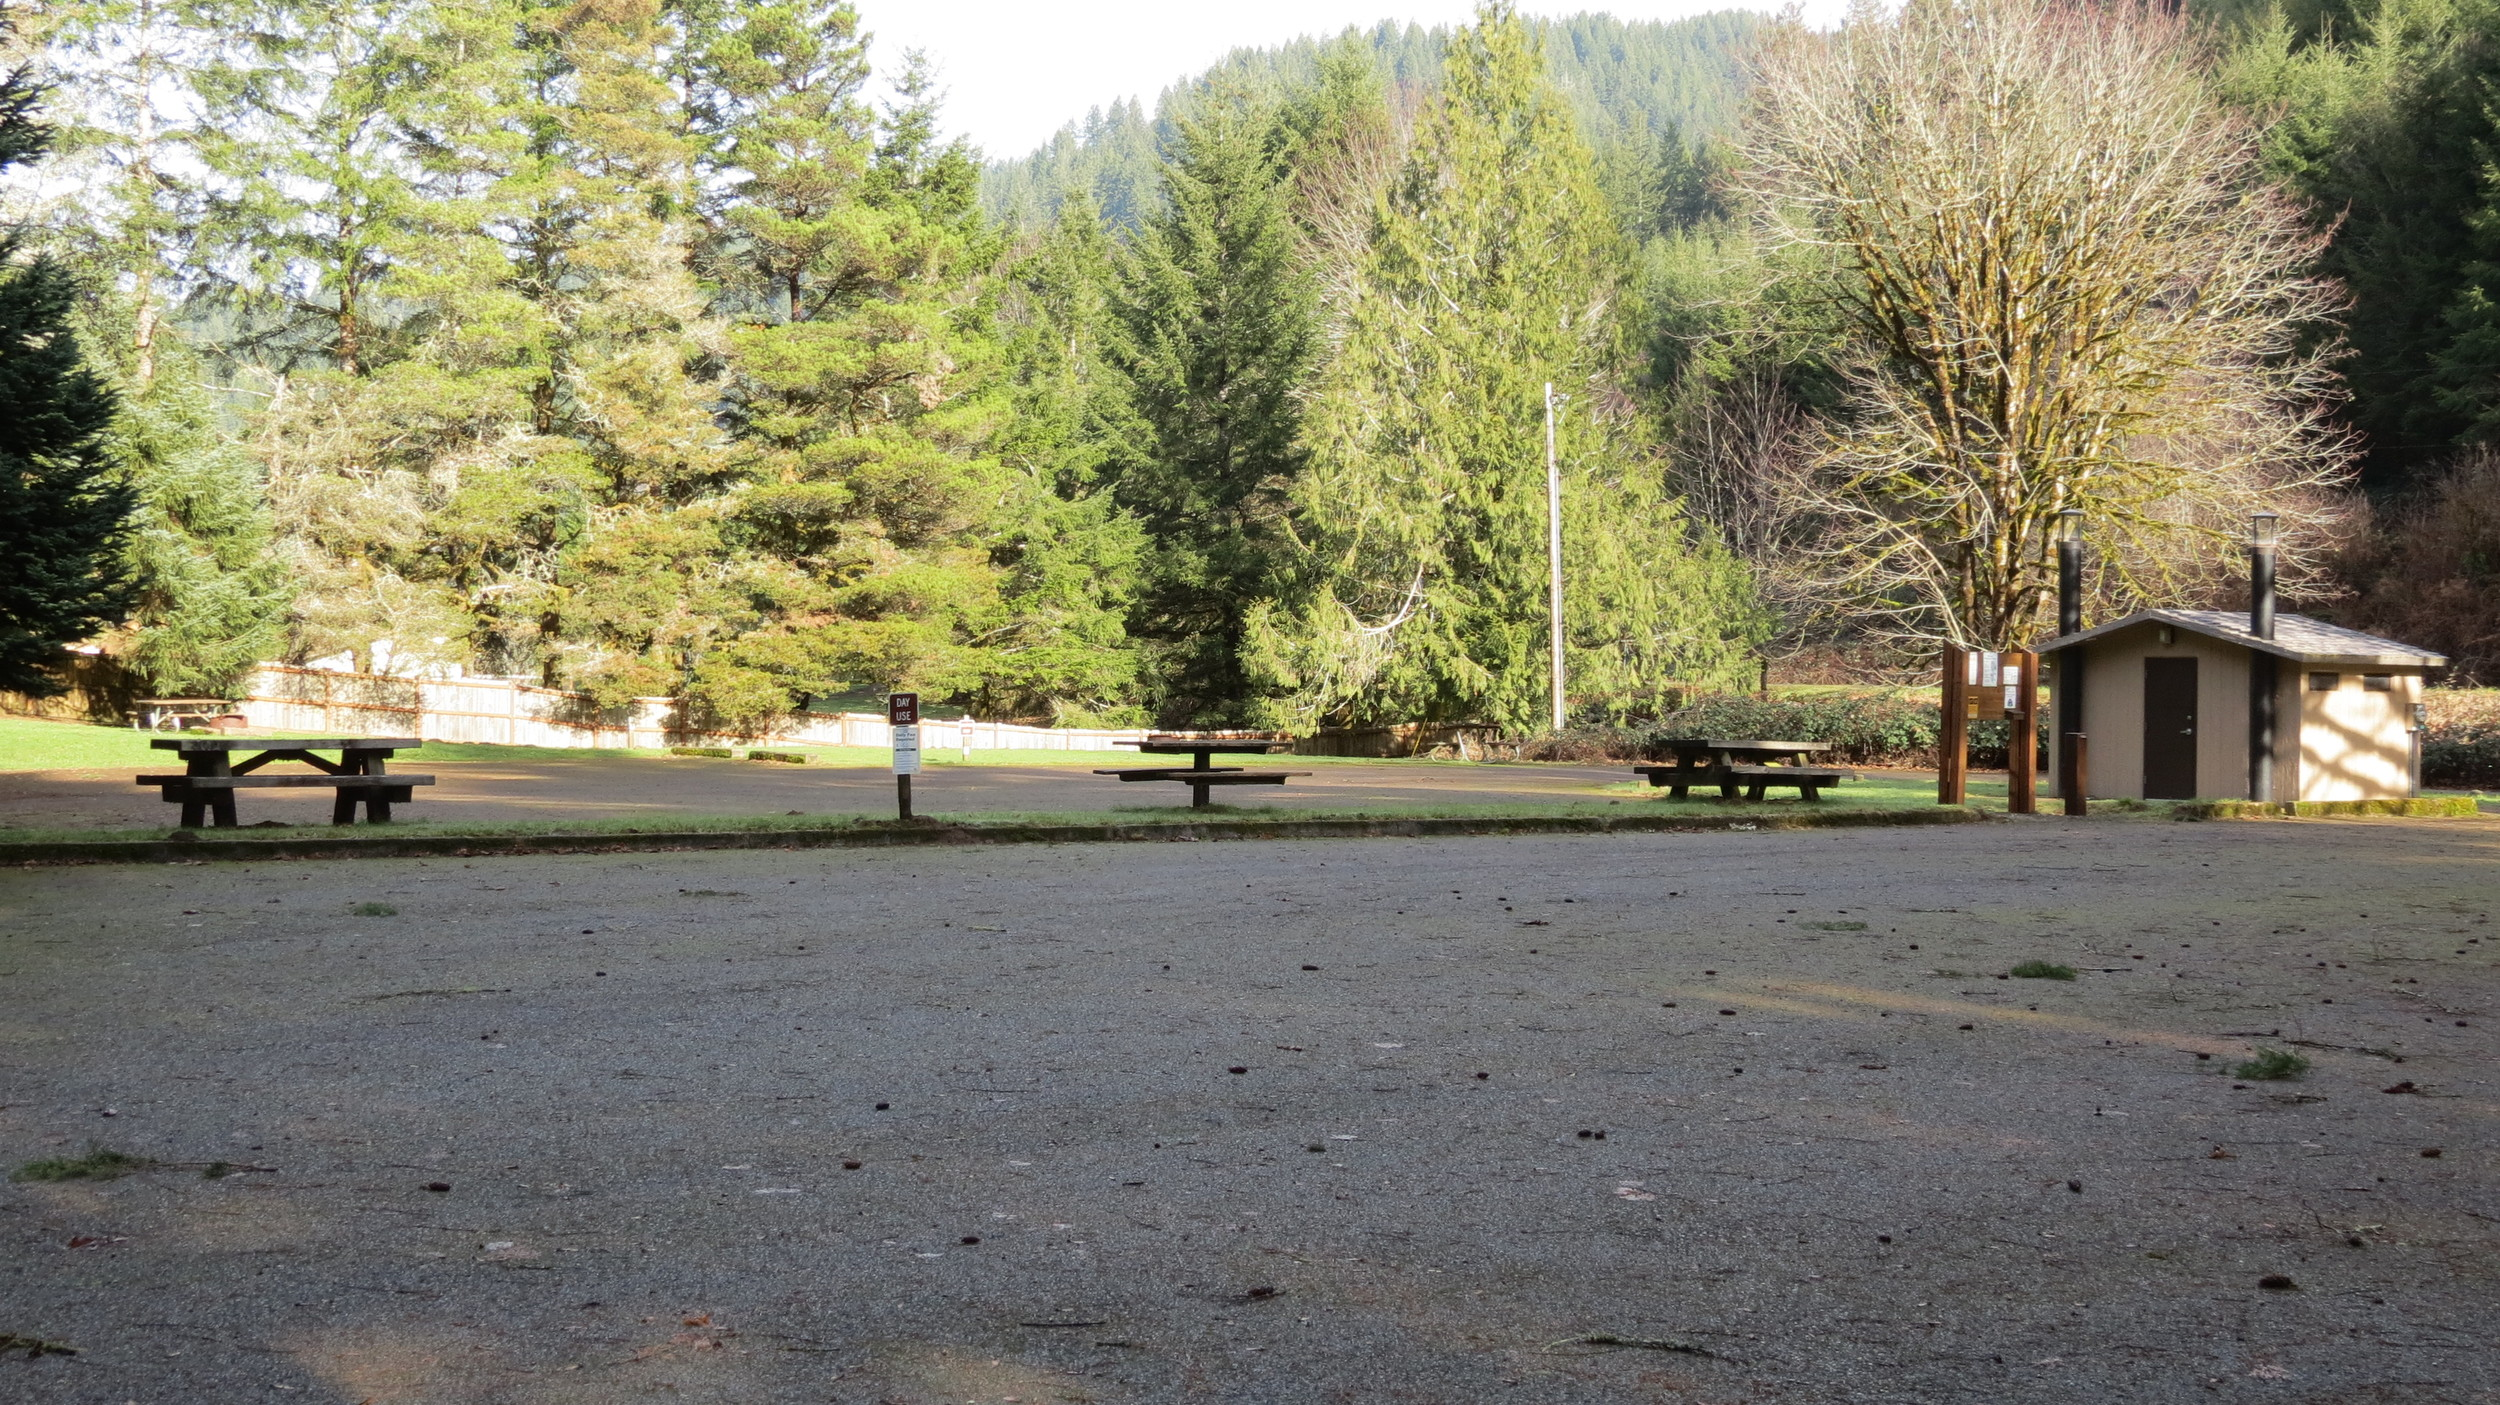 Blackberry Day Use Area, Alsea River,Siuslaw National Forest, CentralCoast Ranger District